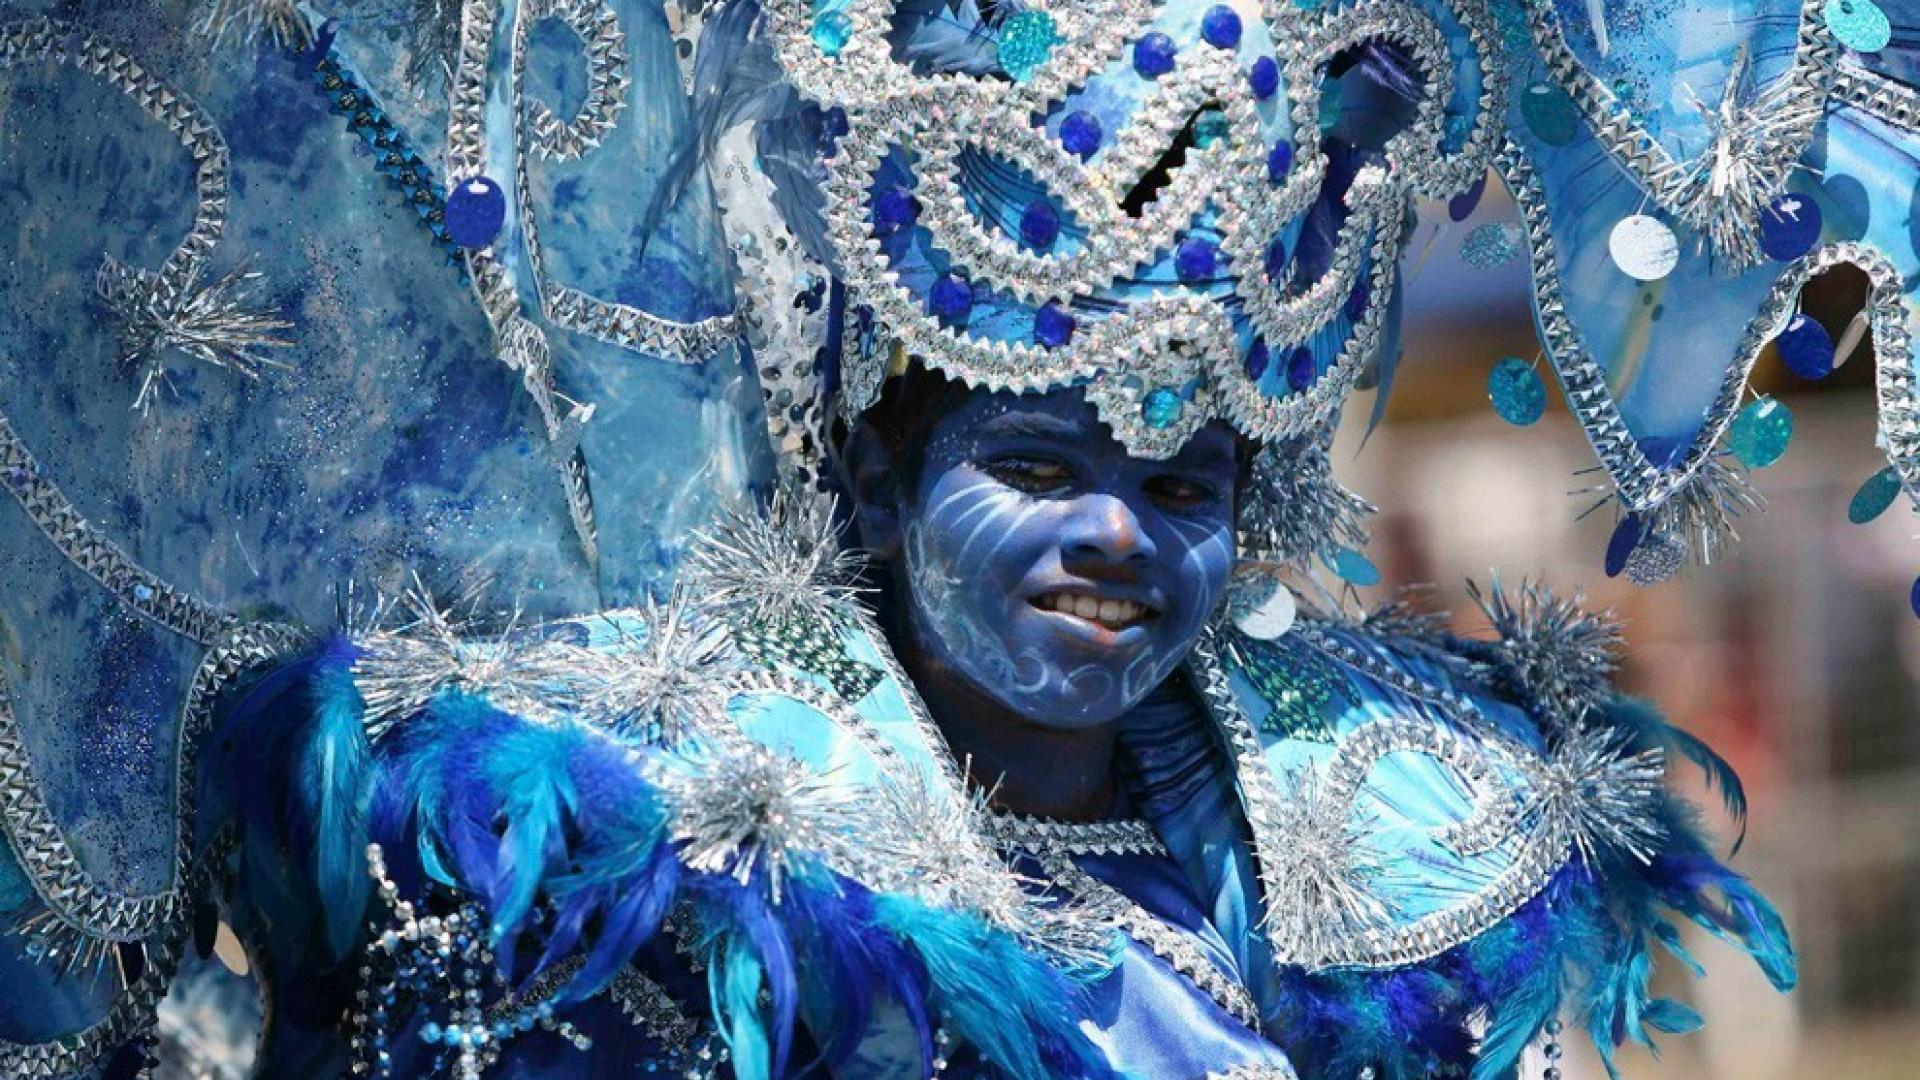 People carnivals port of spain trinidad and tobago wallpaper | (12369)